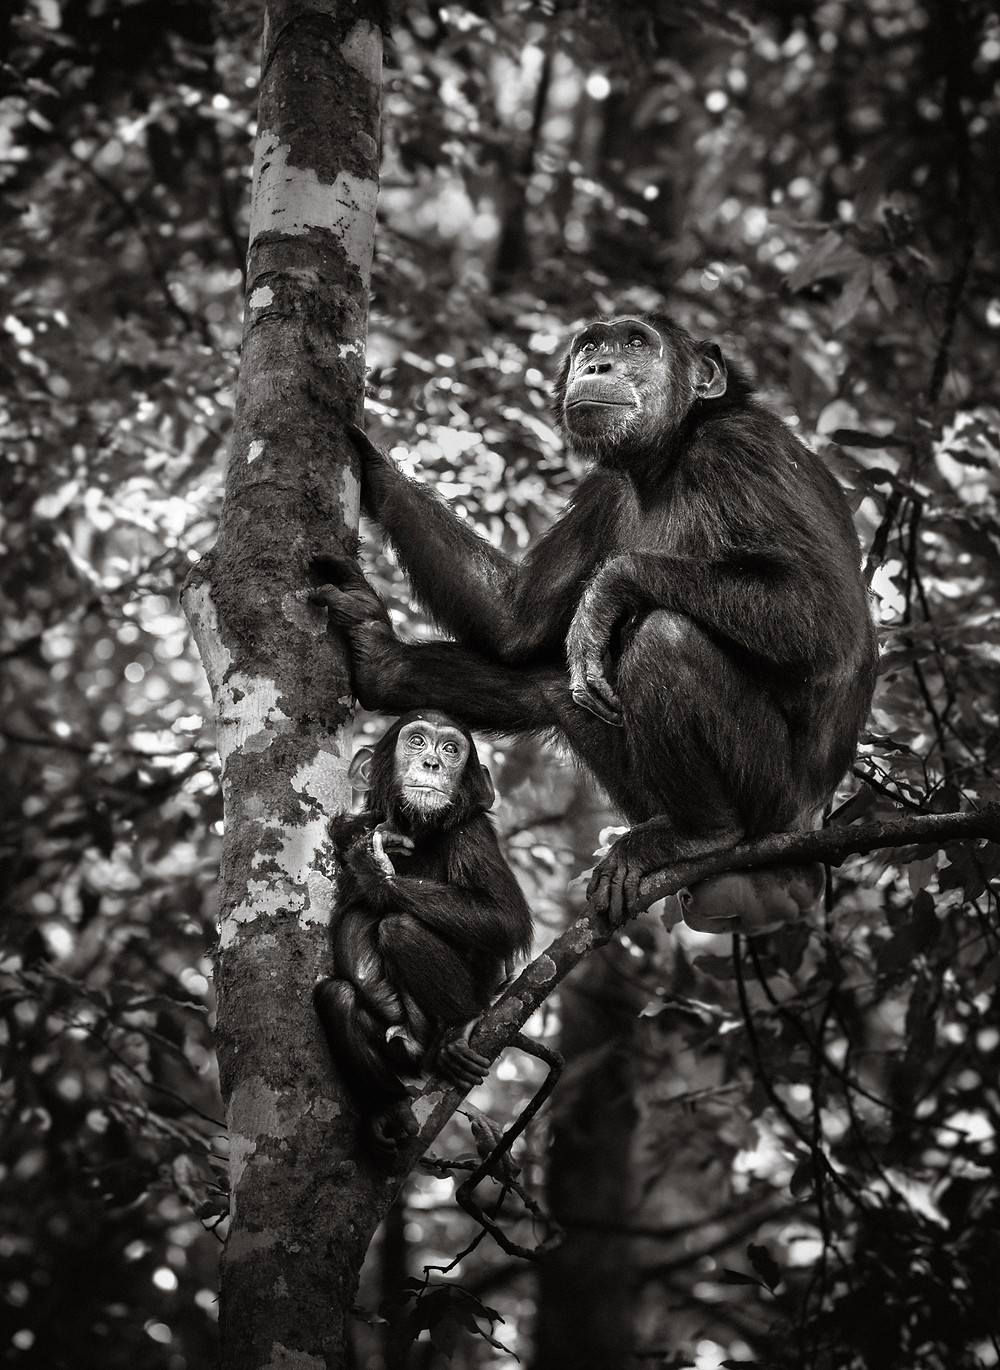 mother and child chimpanzees